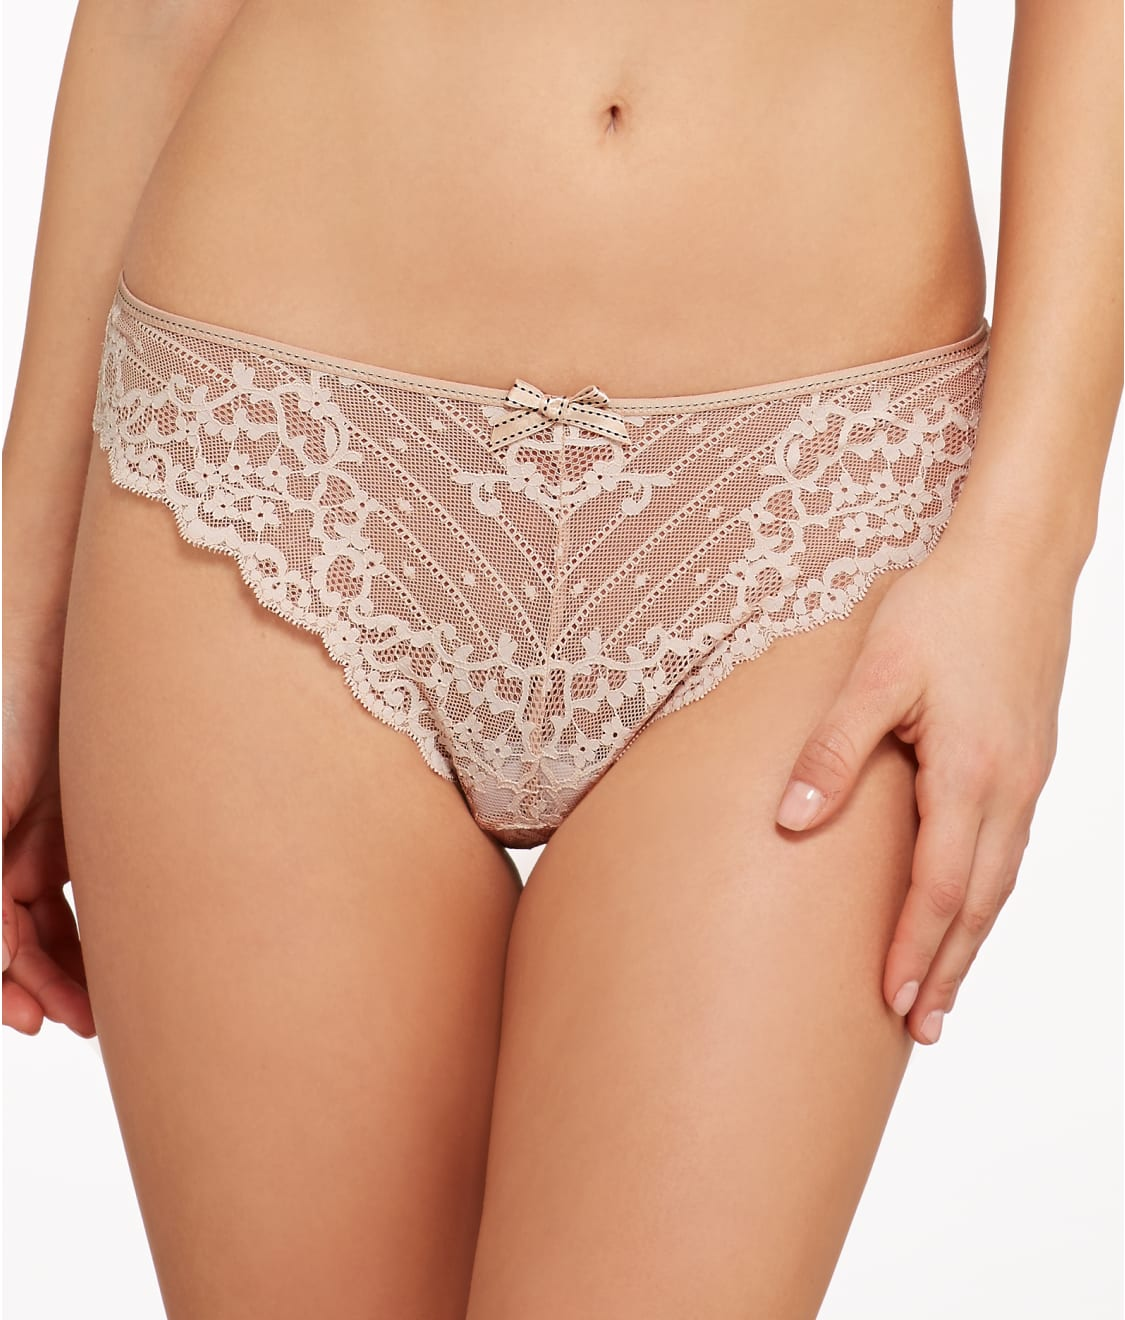 chantelle rive gauche tanga panty 3089 at barenecessities